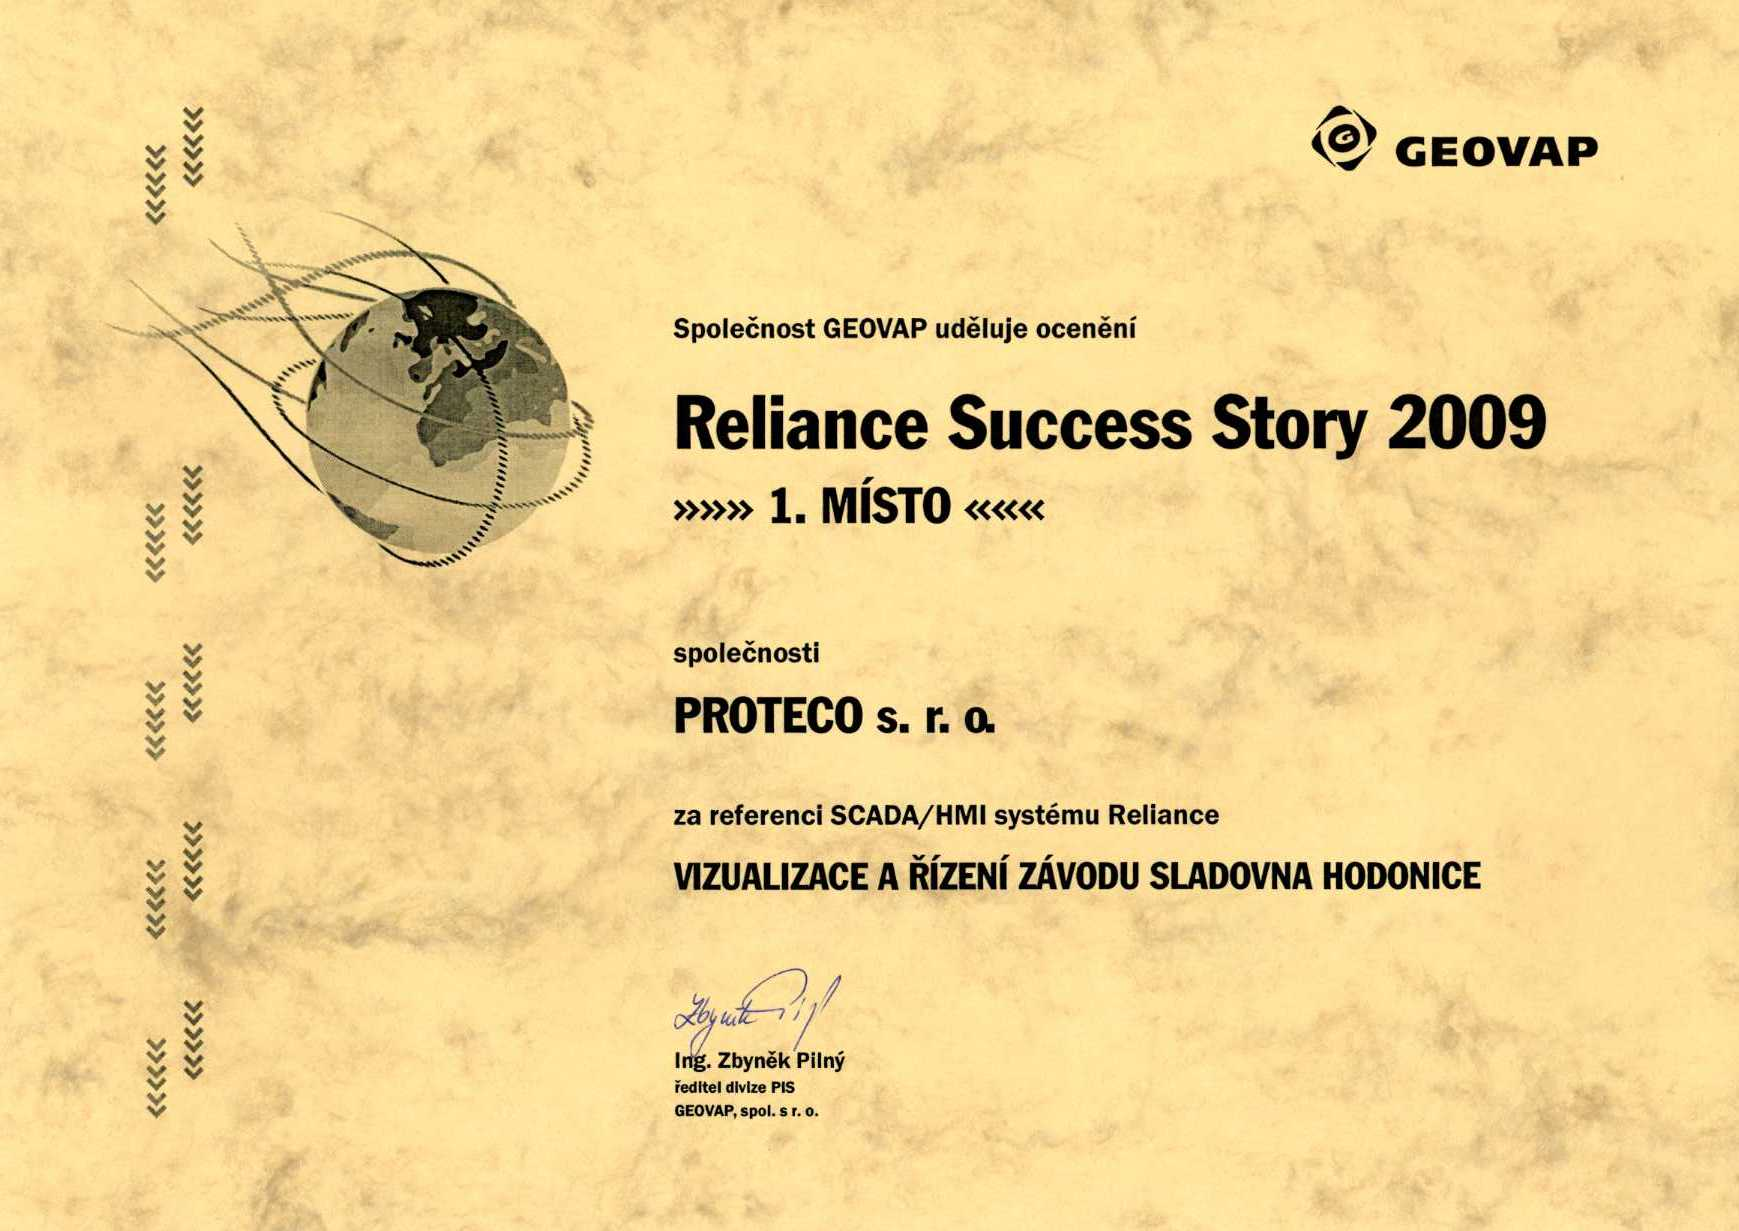 Reliance Success Story 2009